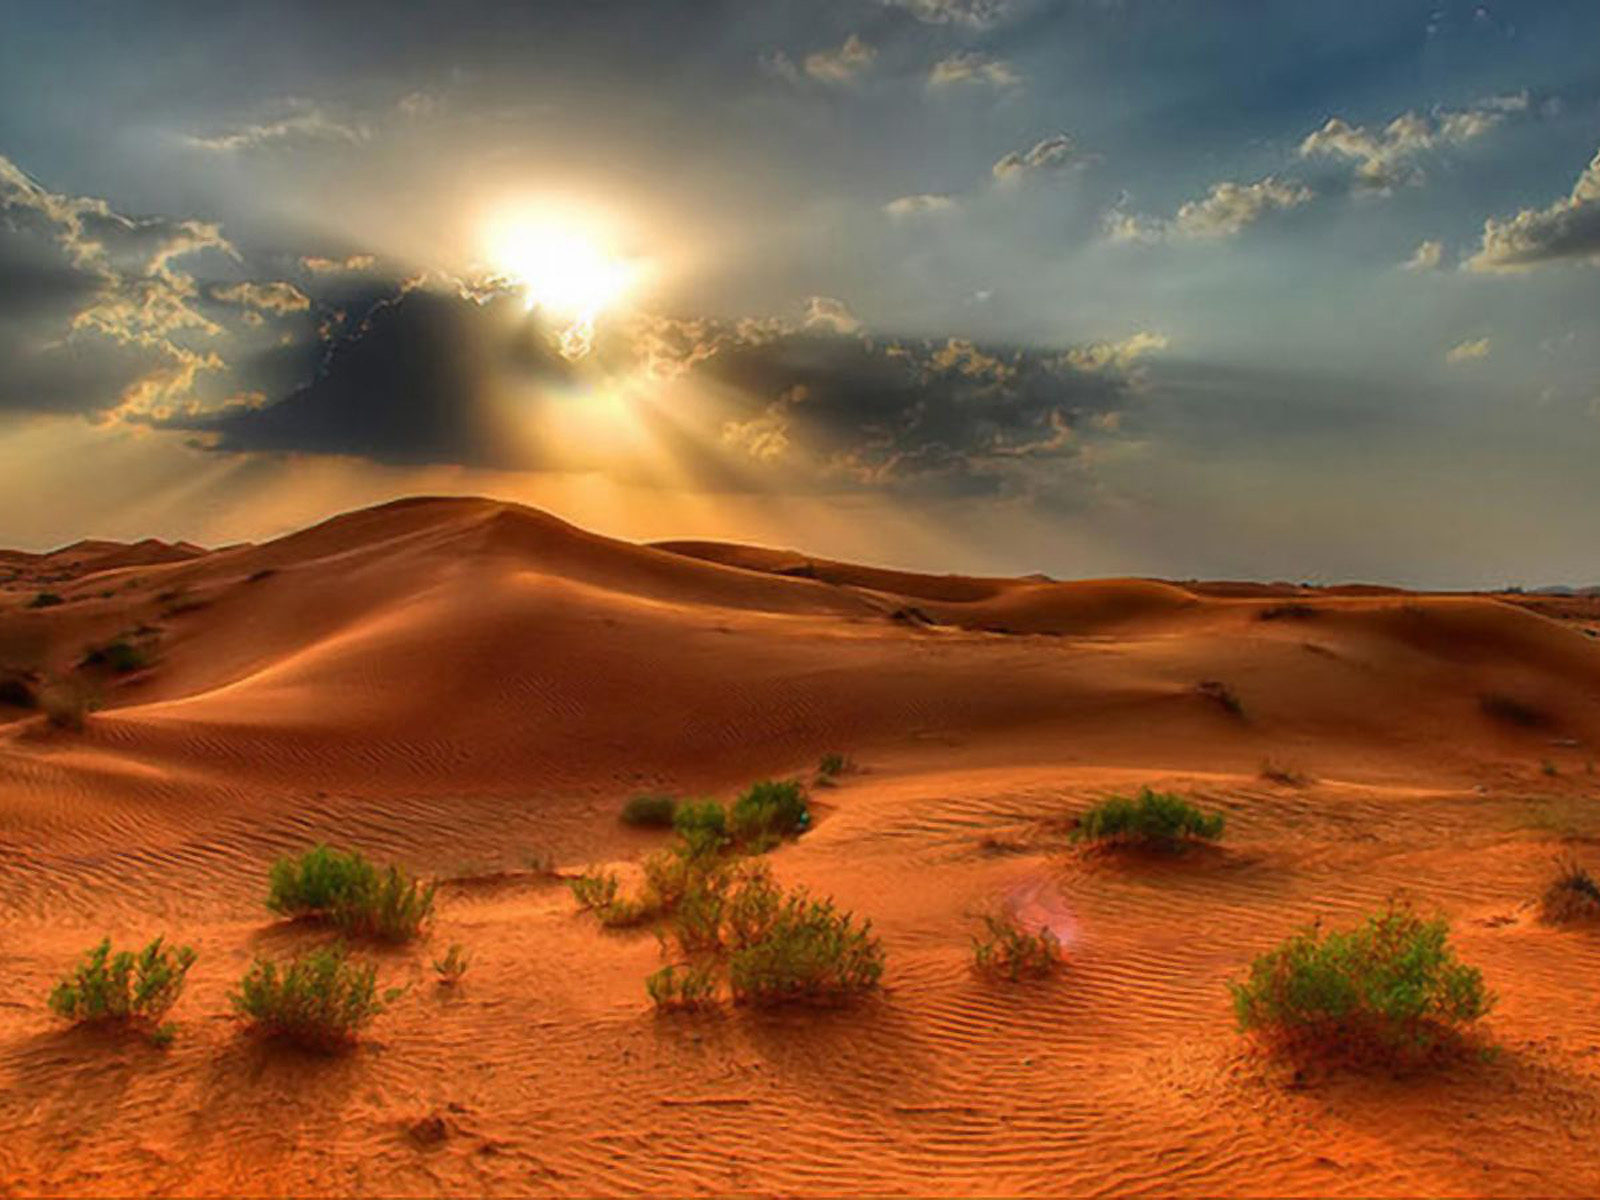 Beautiful Cars Wallpapers Free Download Desert Landscape Summer Sunset In The Desert Red Sand